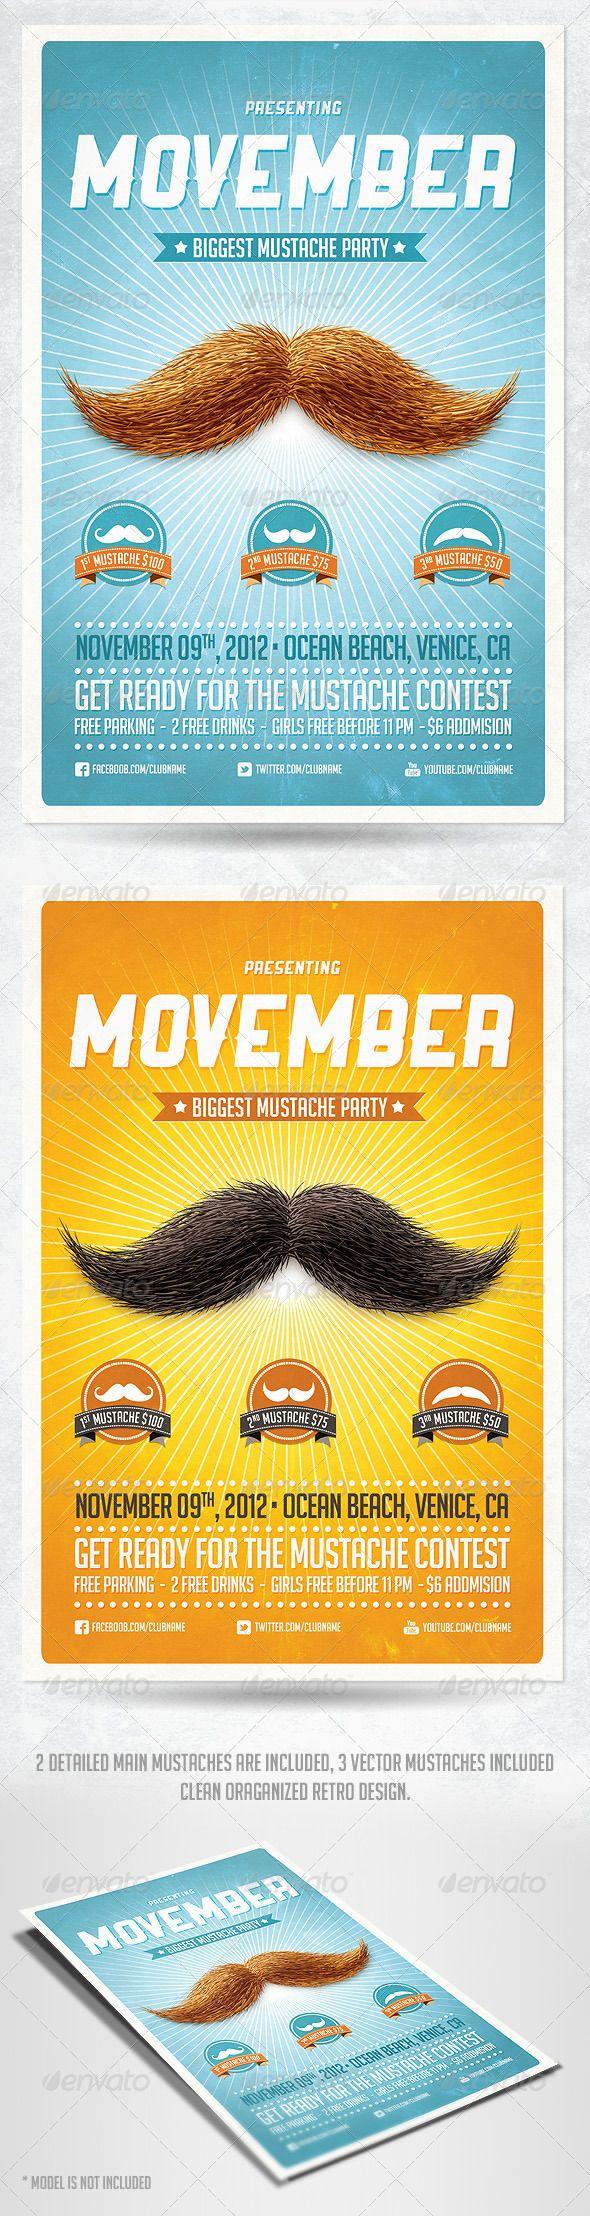 Movember Retro Party Flyer Template PSD